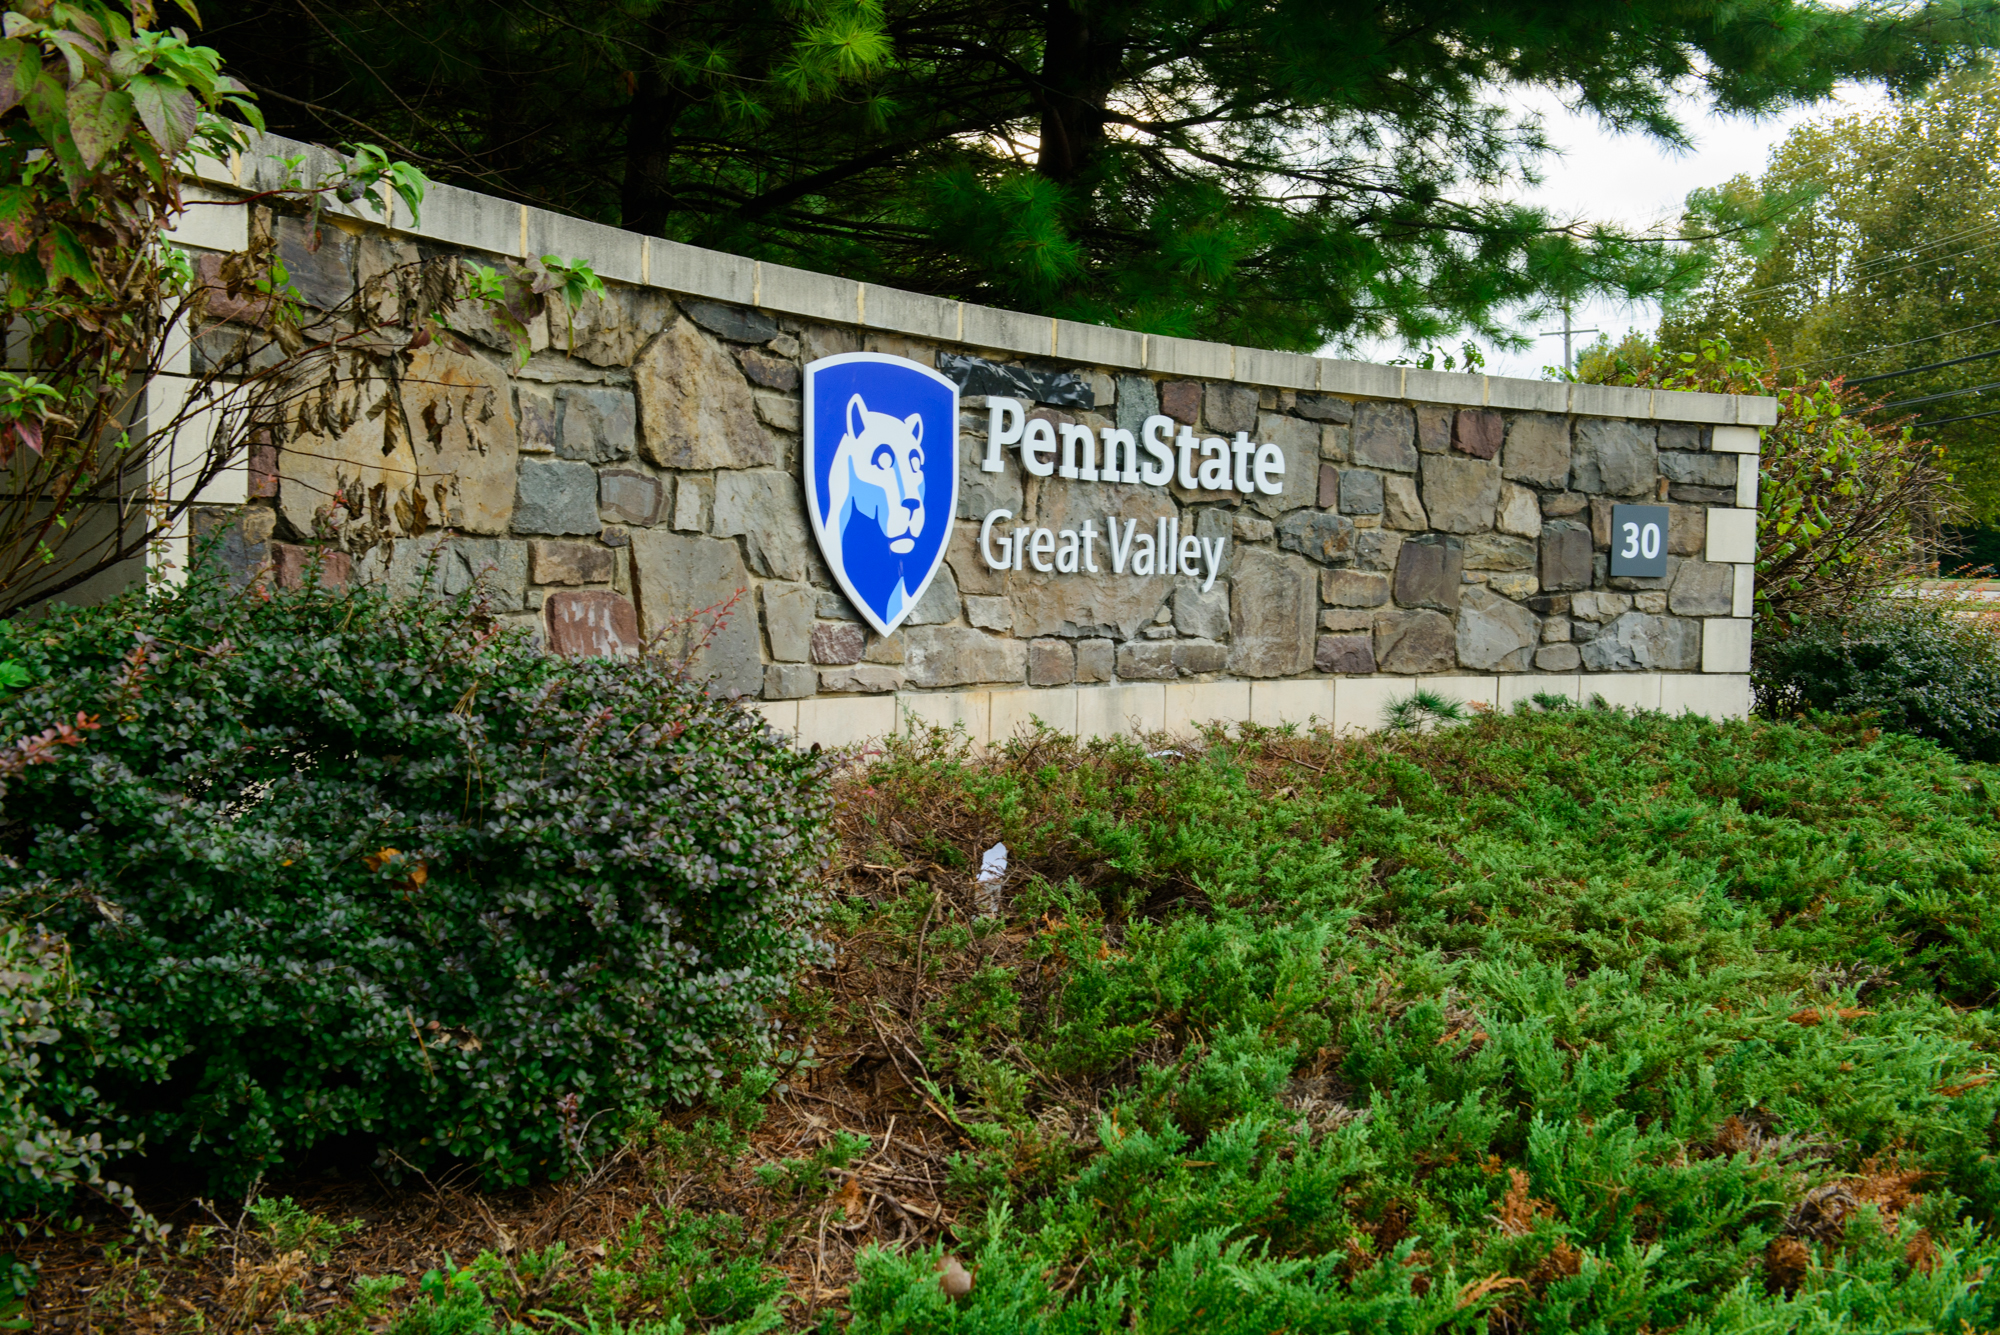 Penn State Great Valley Announces Inaugural Student Pitch Day